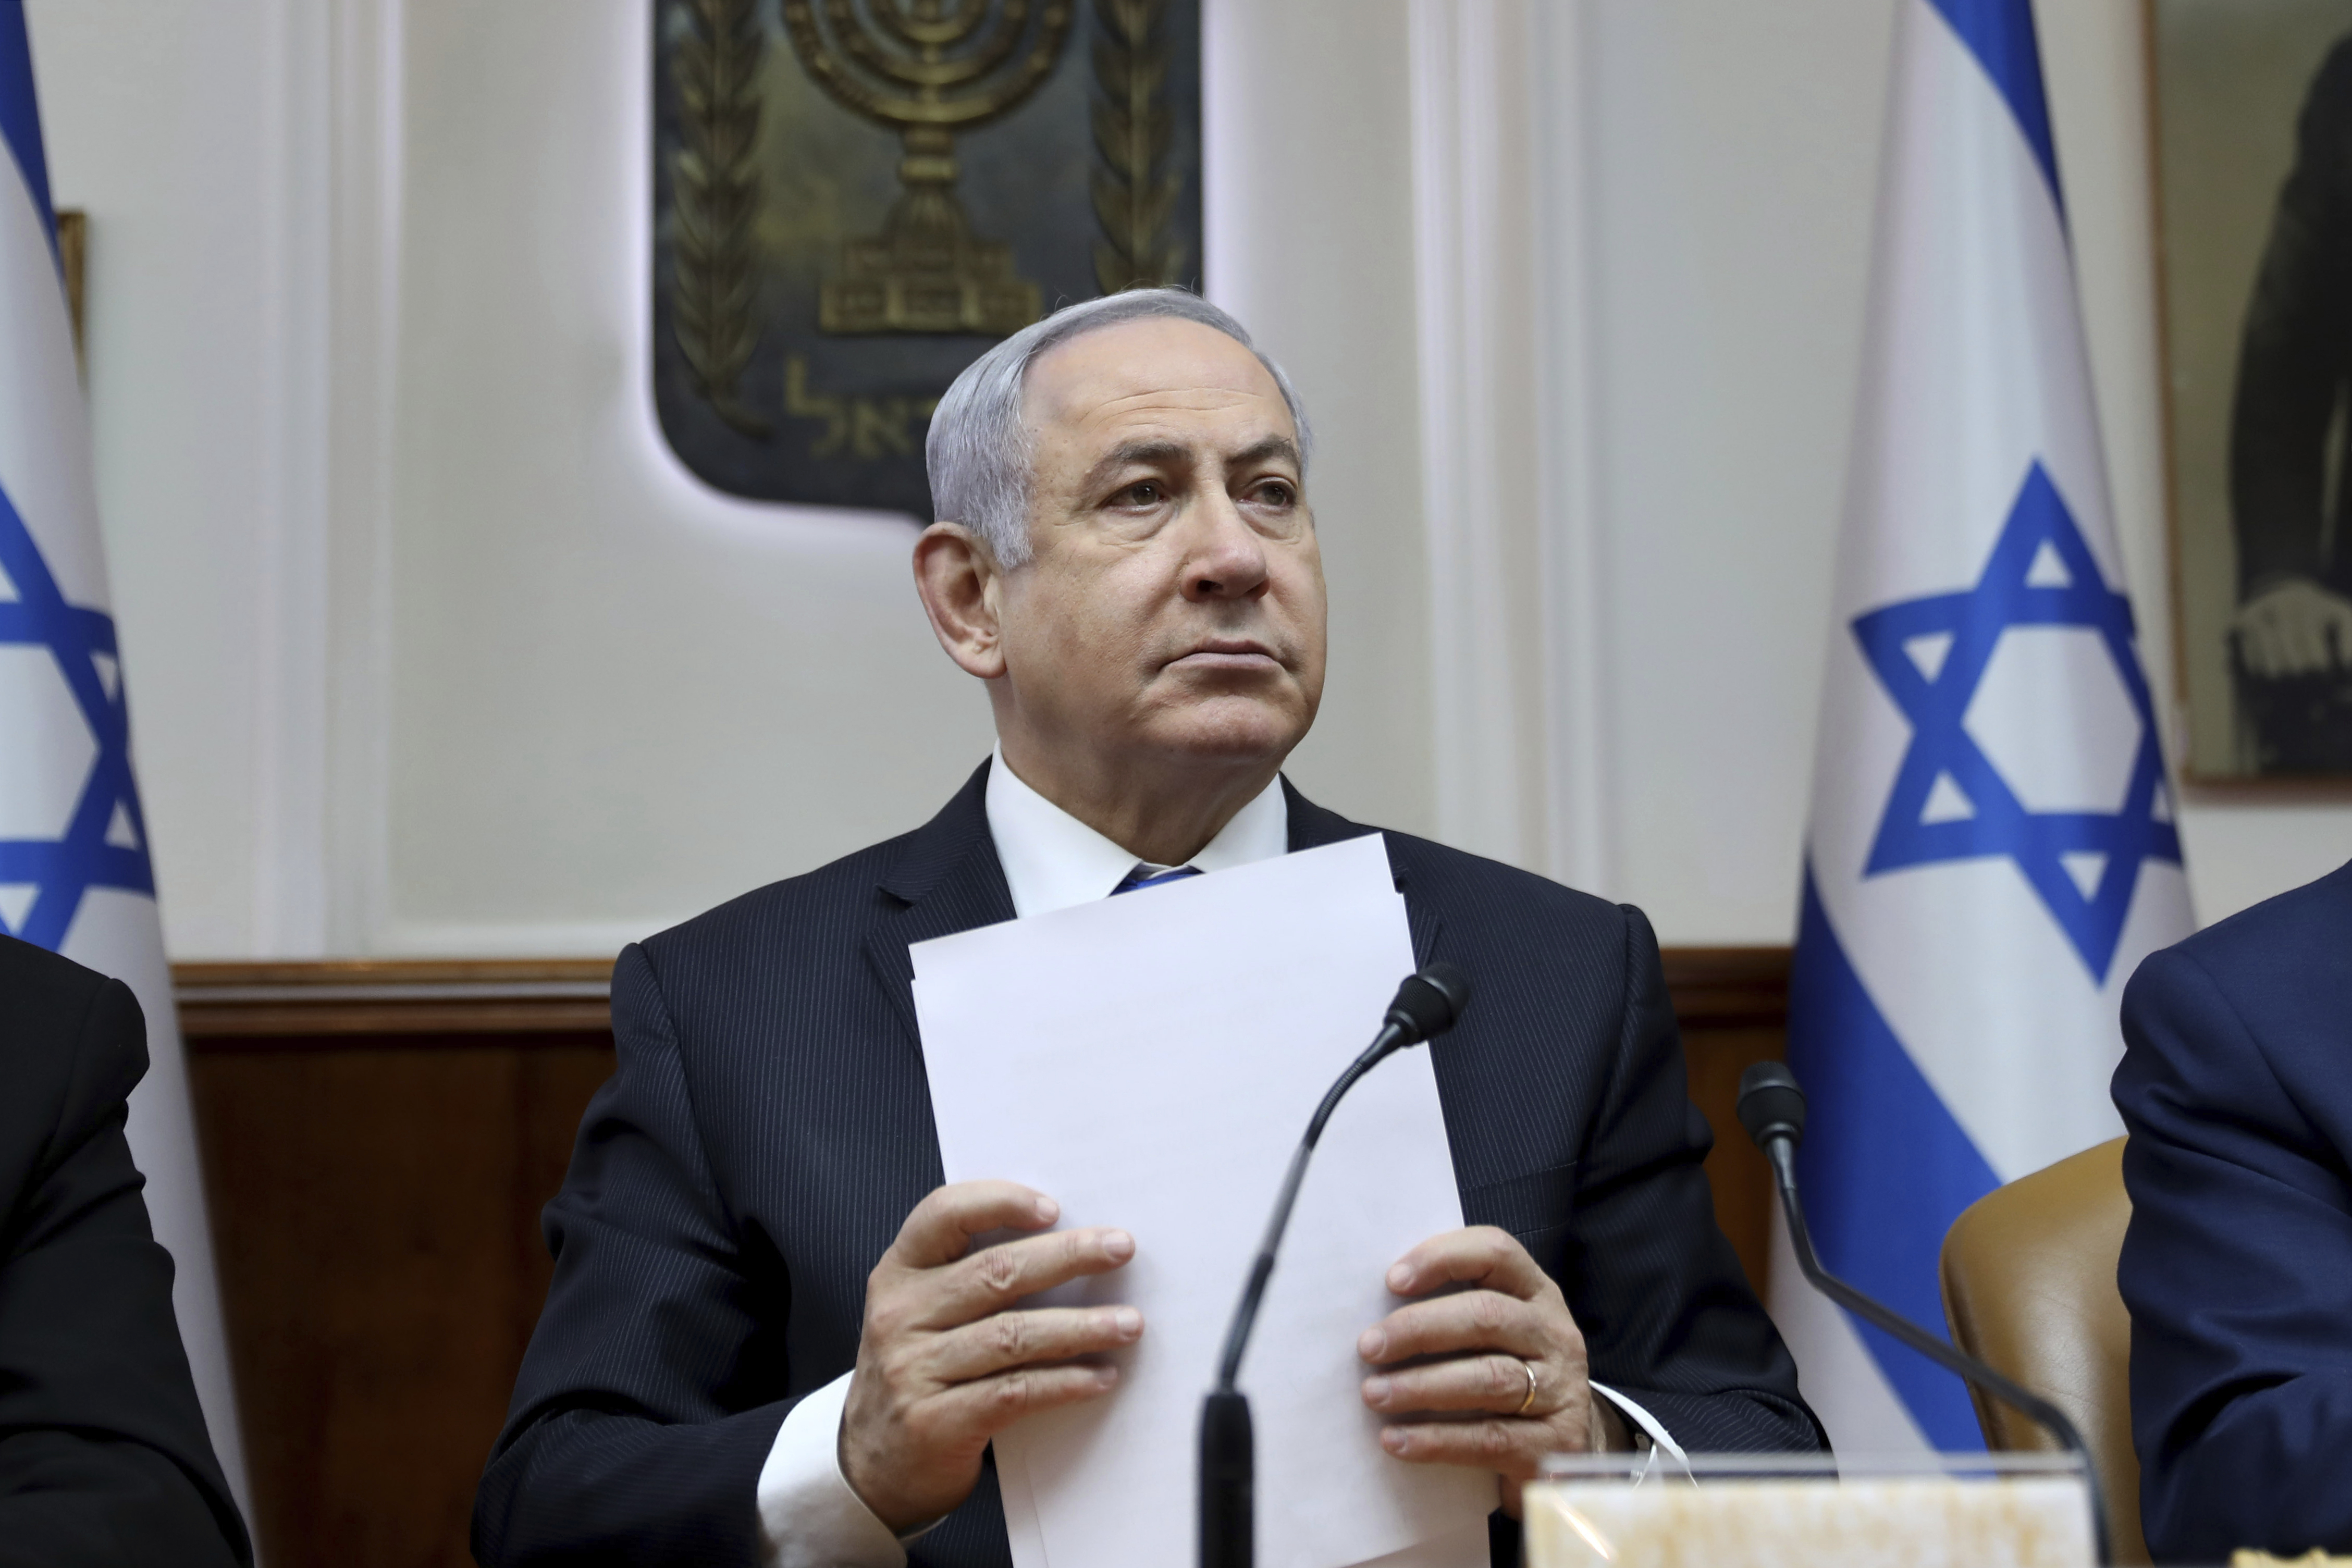 Israeli court orders Netanyahu to appear at trials opening